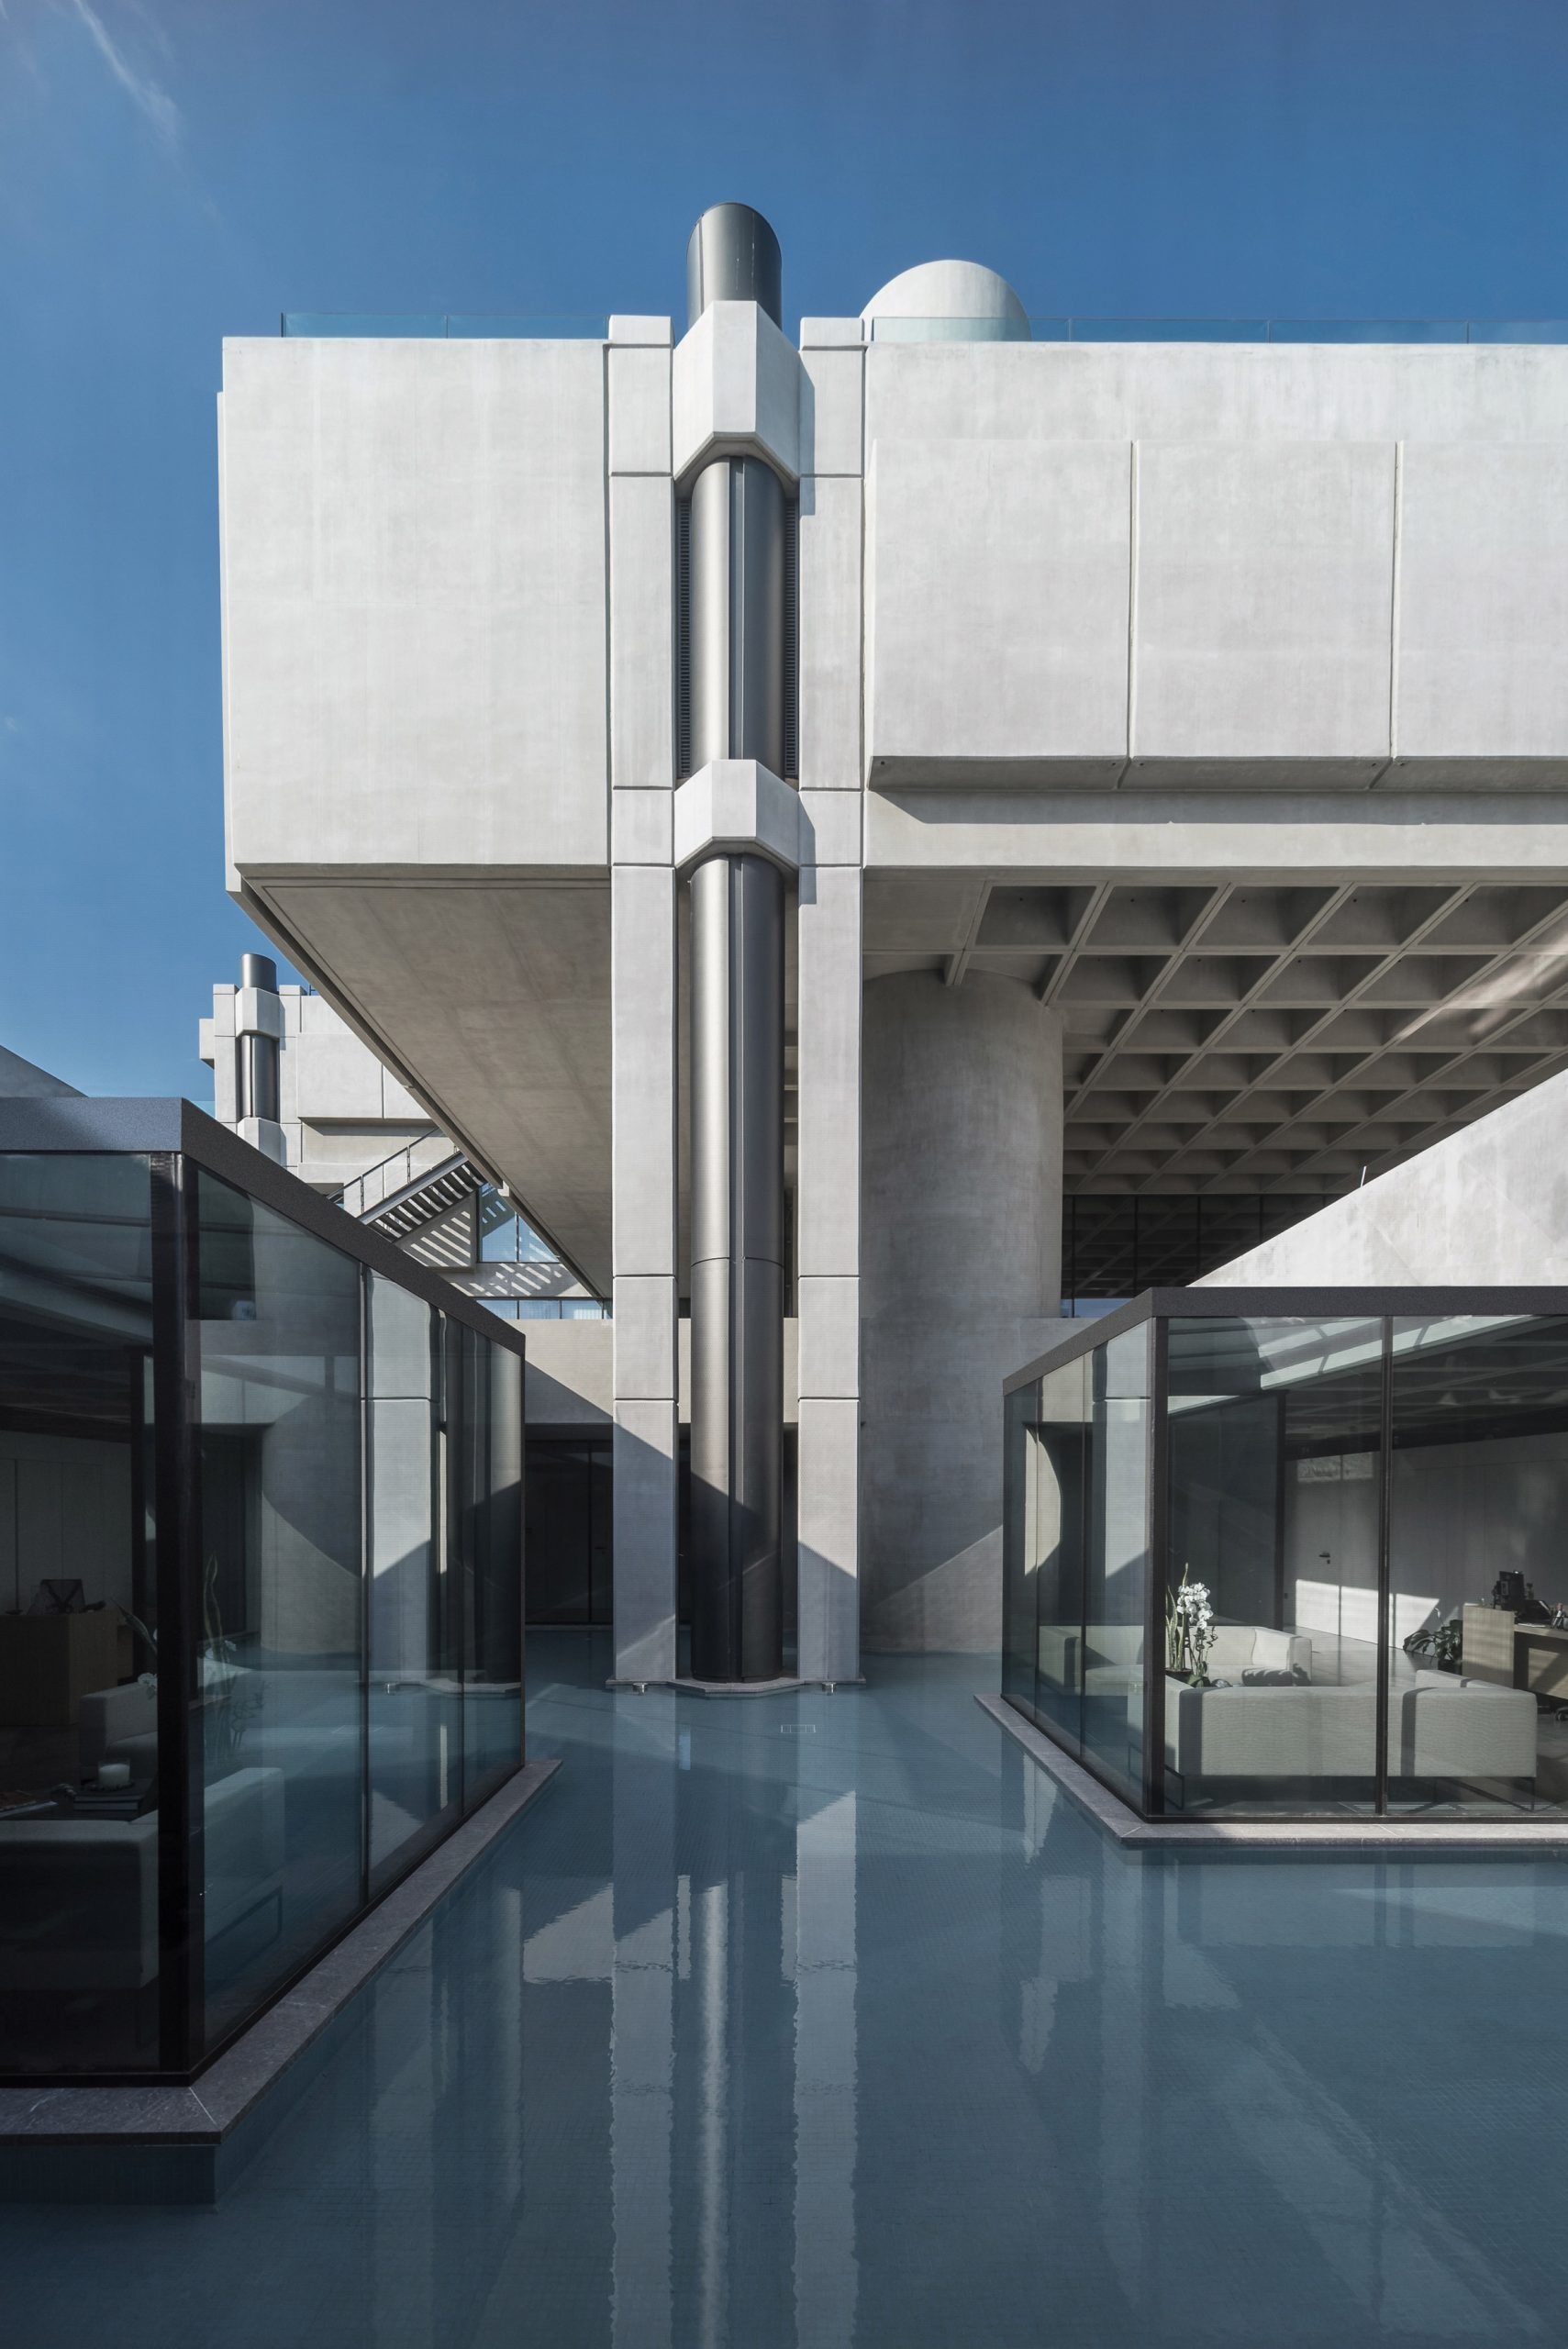 The concrete and glazed facades of a Greek office